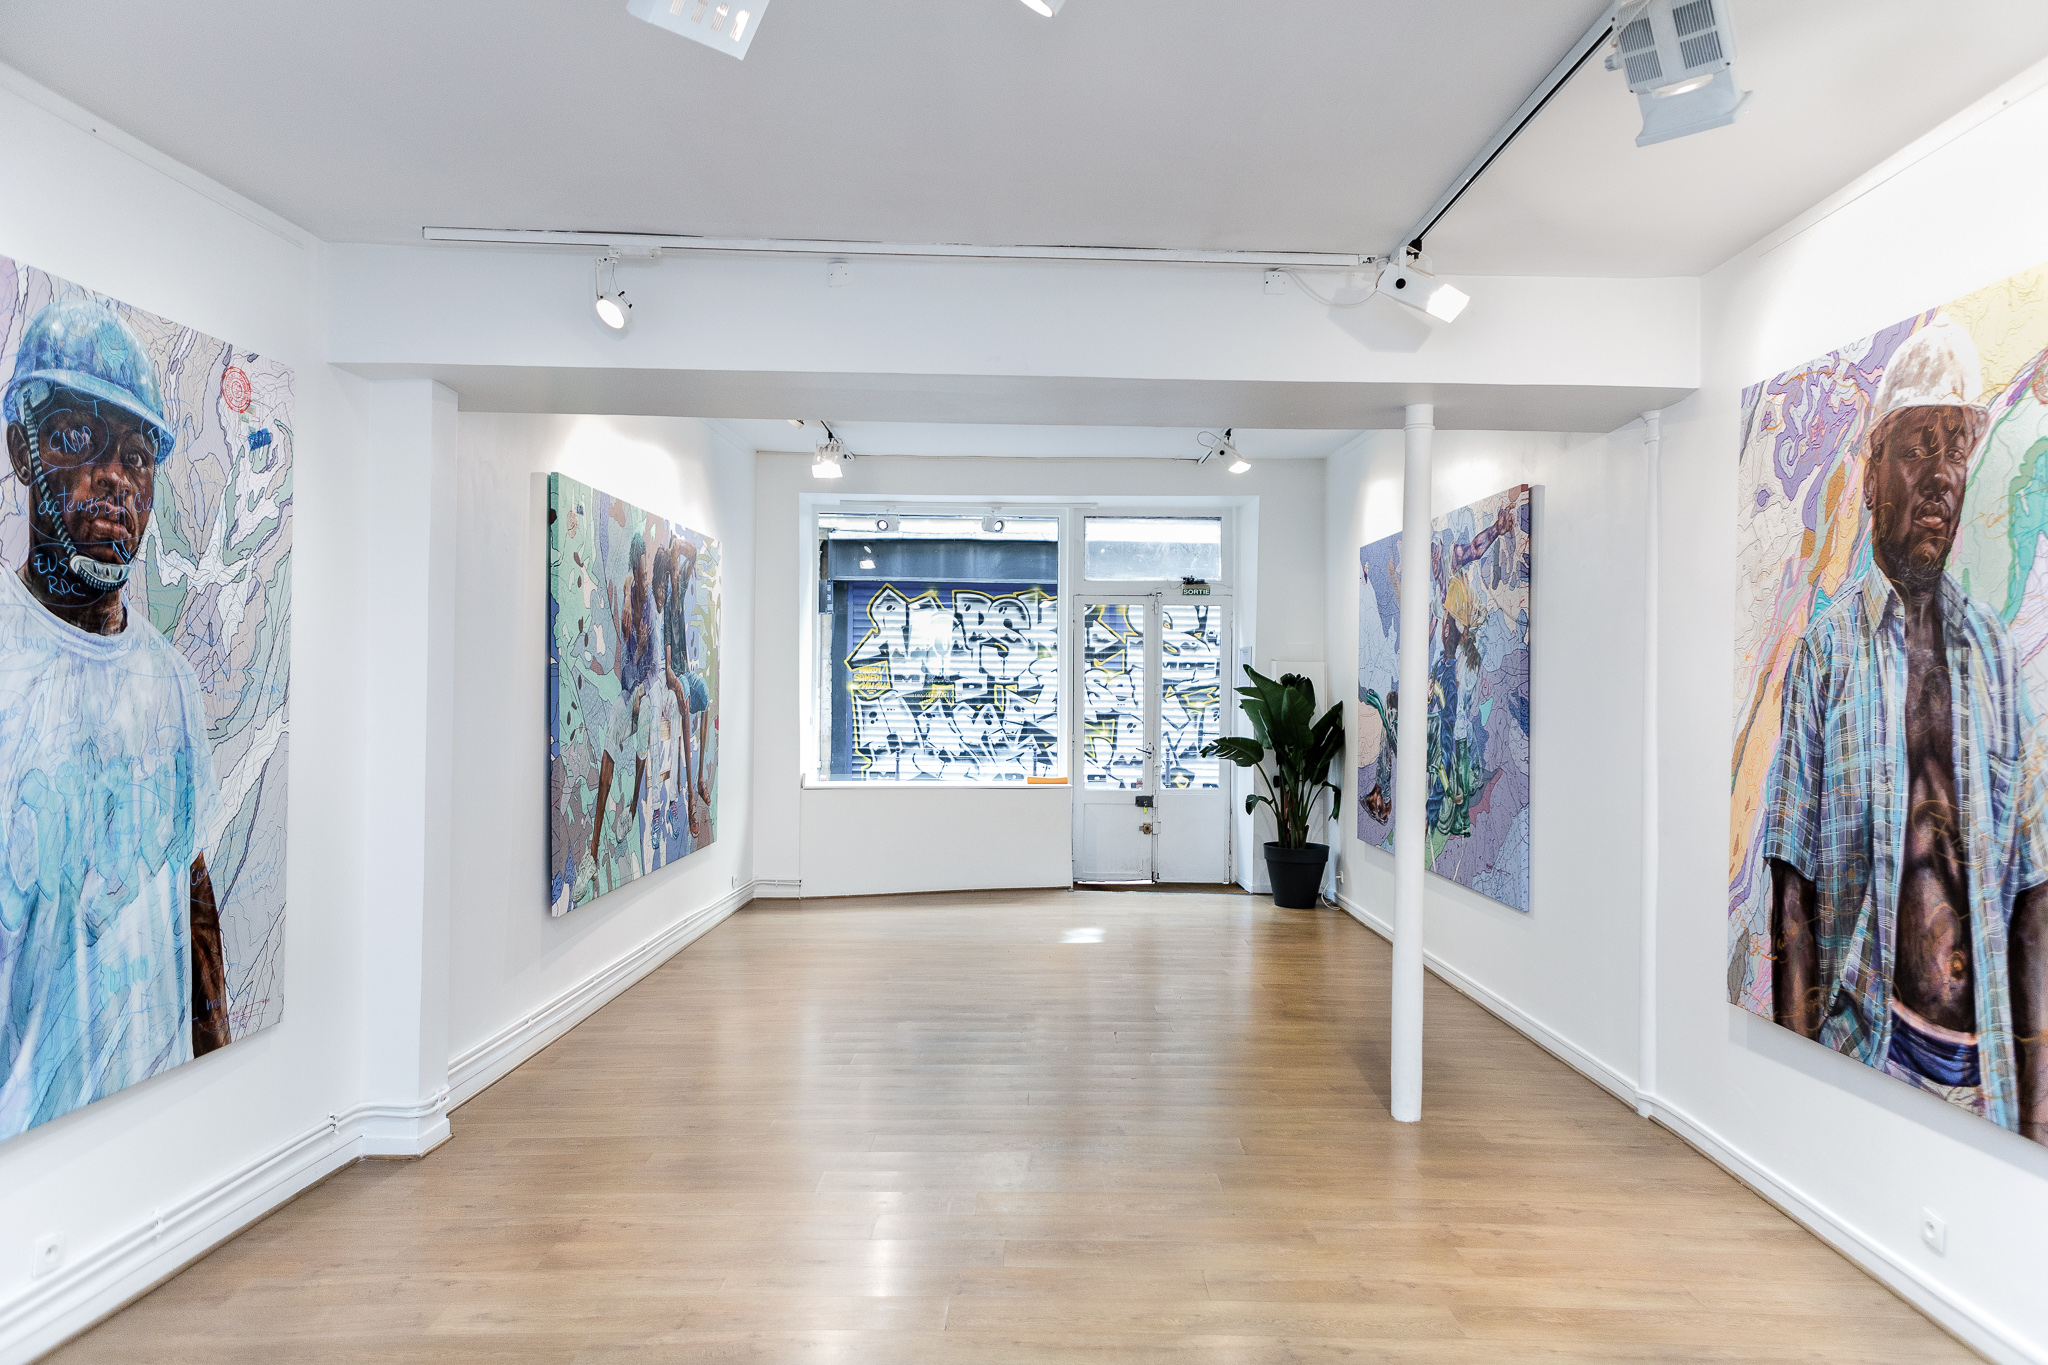 Installation view of Human@Condition, 2021. Courtesy of AFIKARIS Gallery